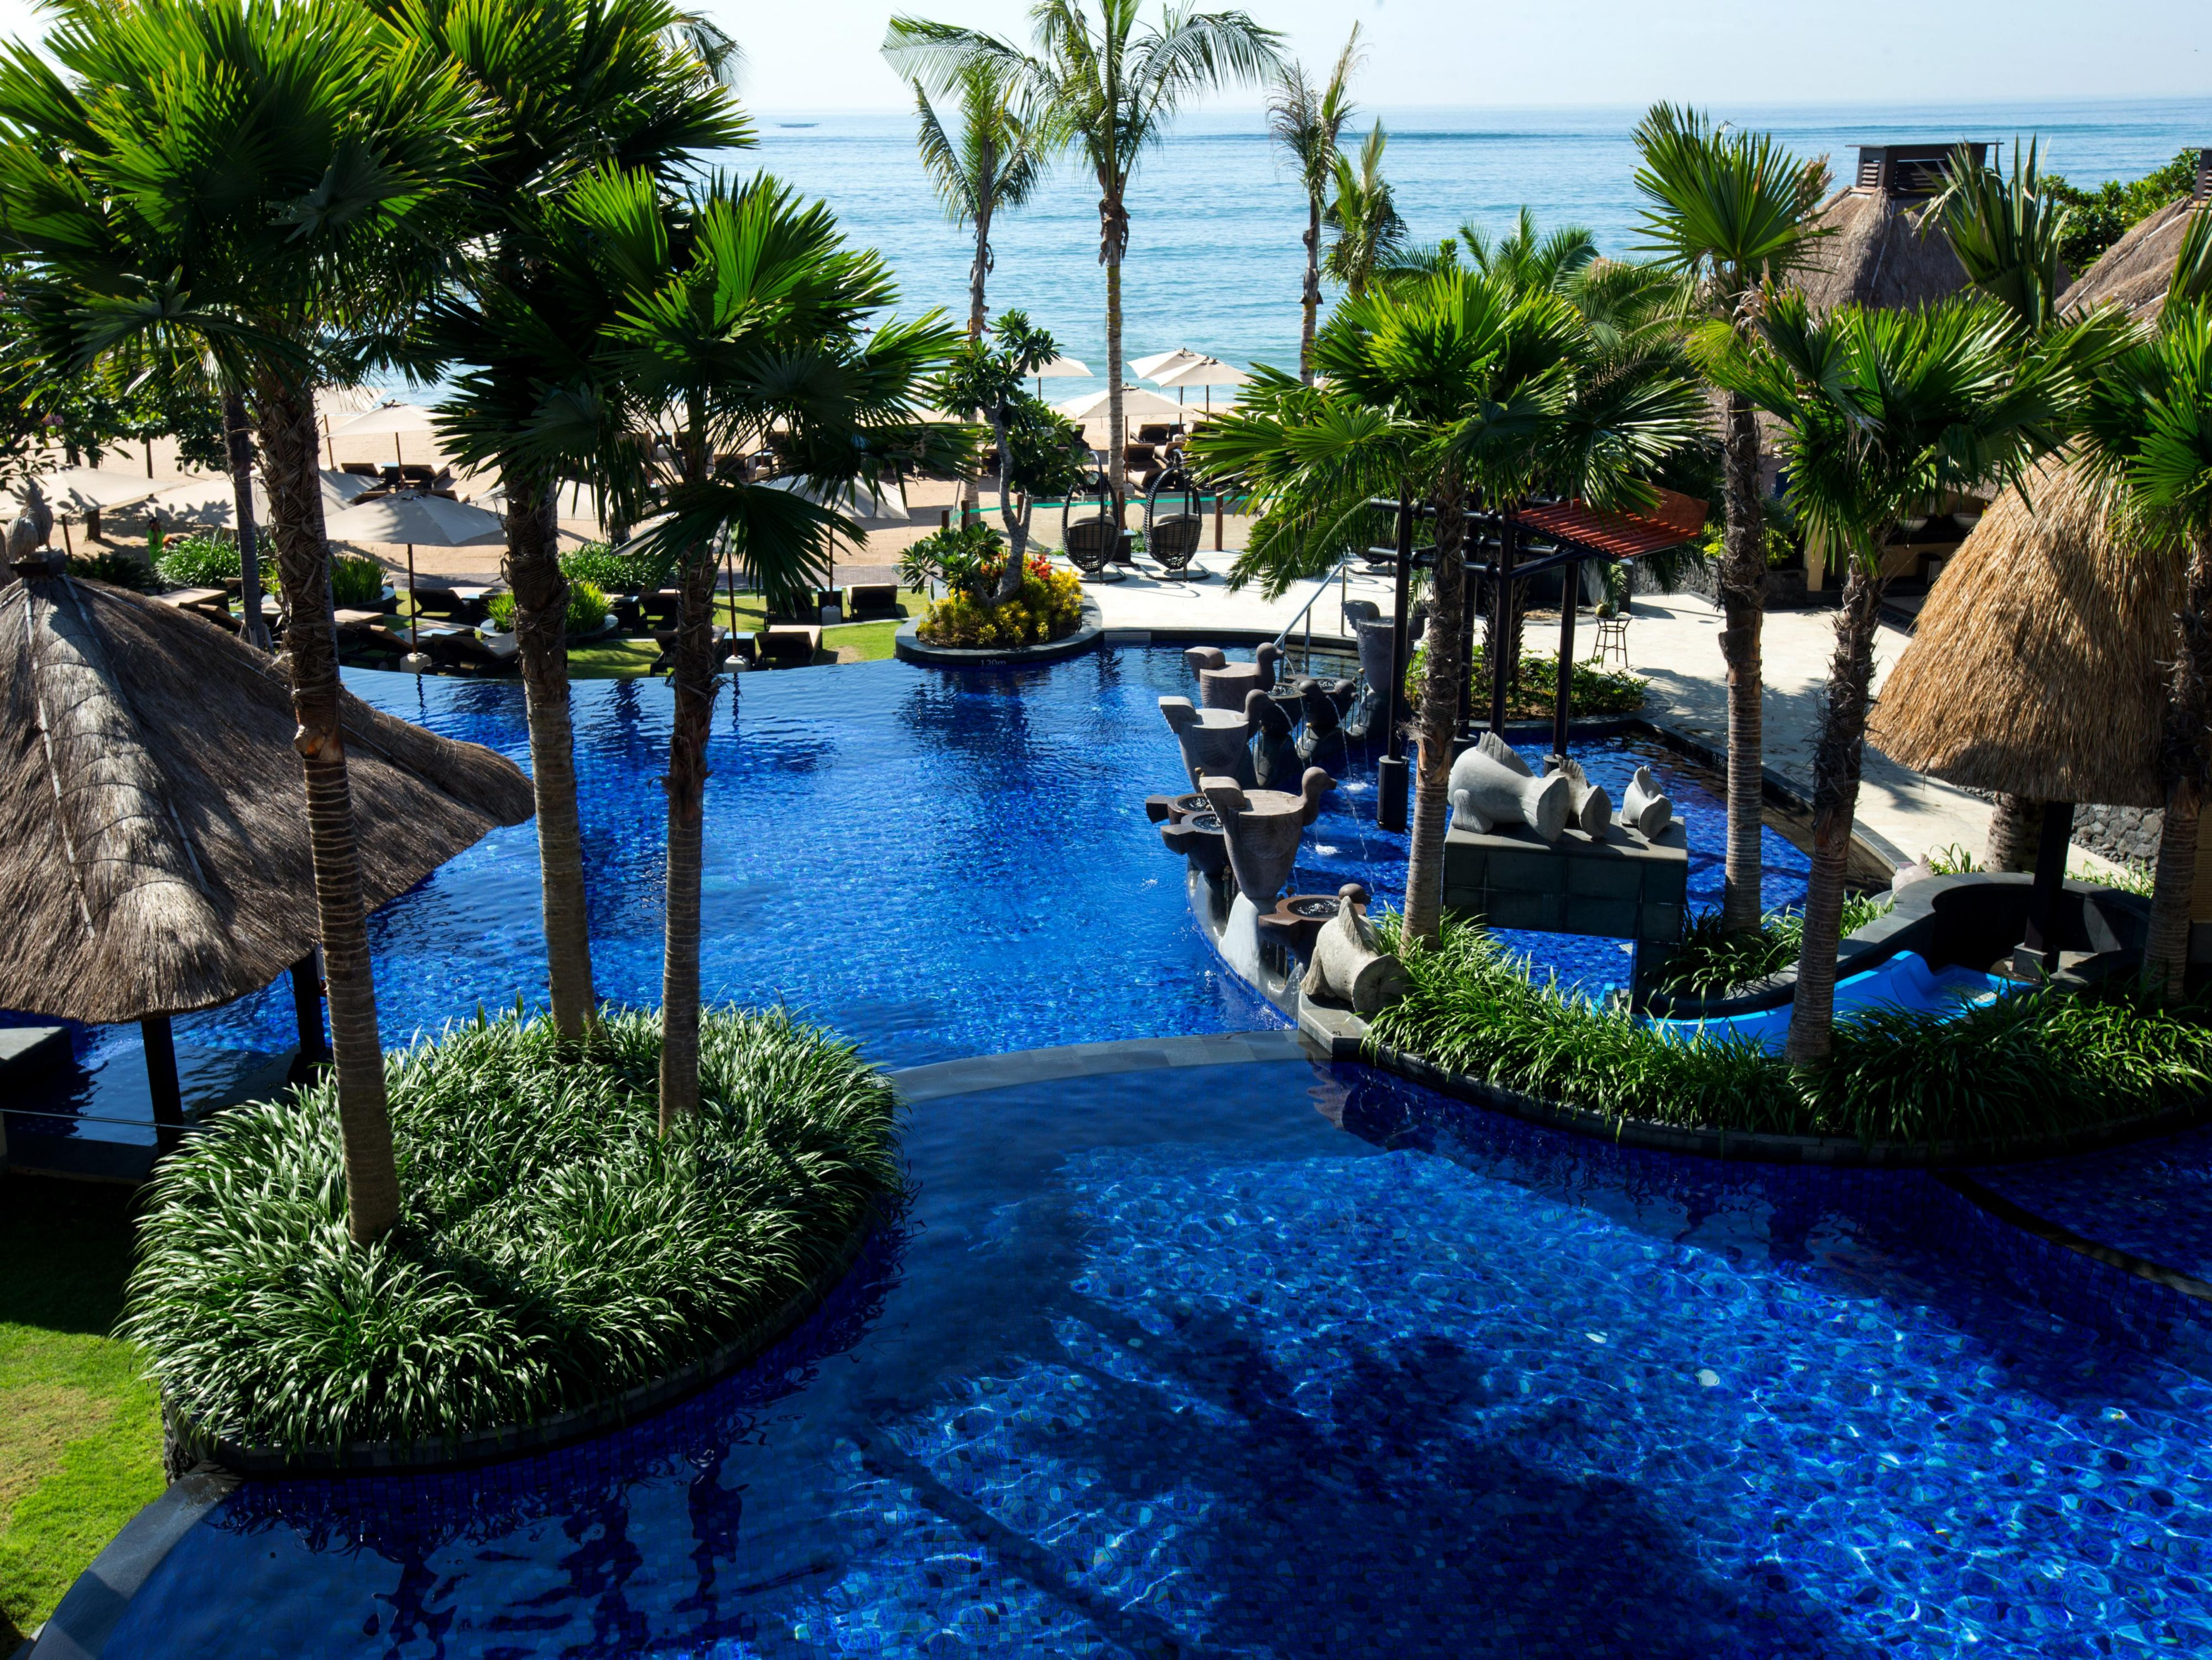 Find bali hotels top 6 hotels in bali indonesia by ihg